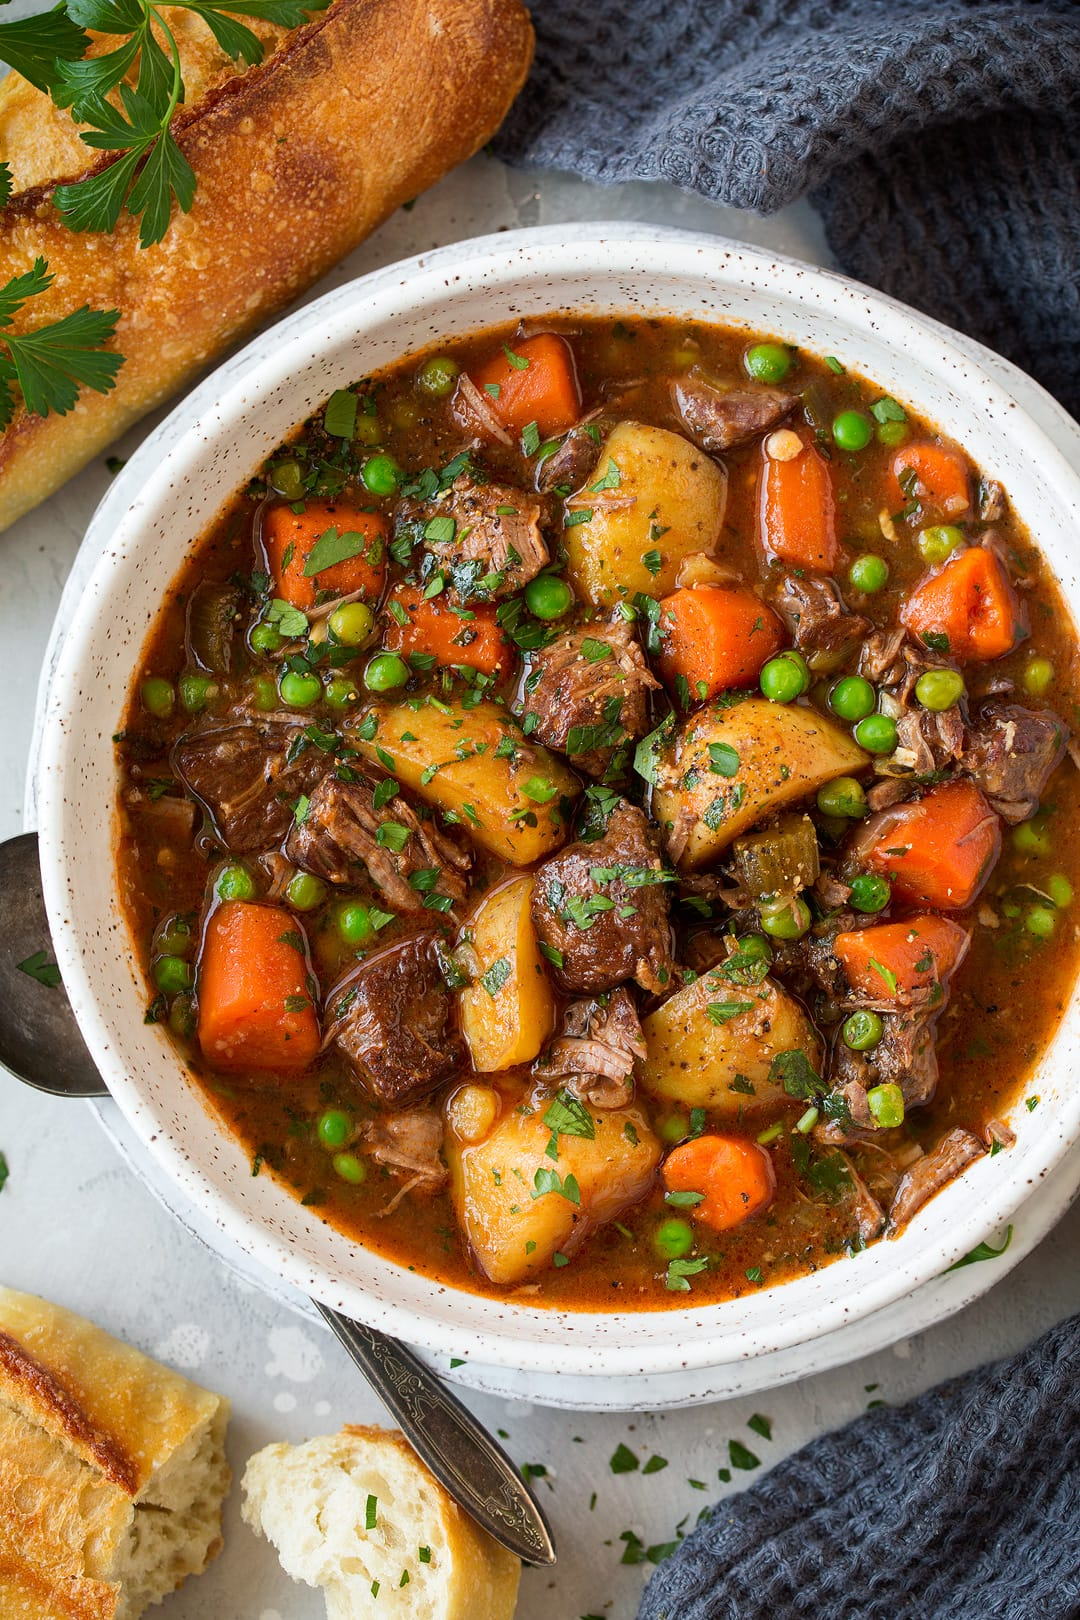 slow cooker Beef Stew shown in a single serving in a white bowl with bread as a side.